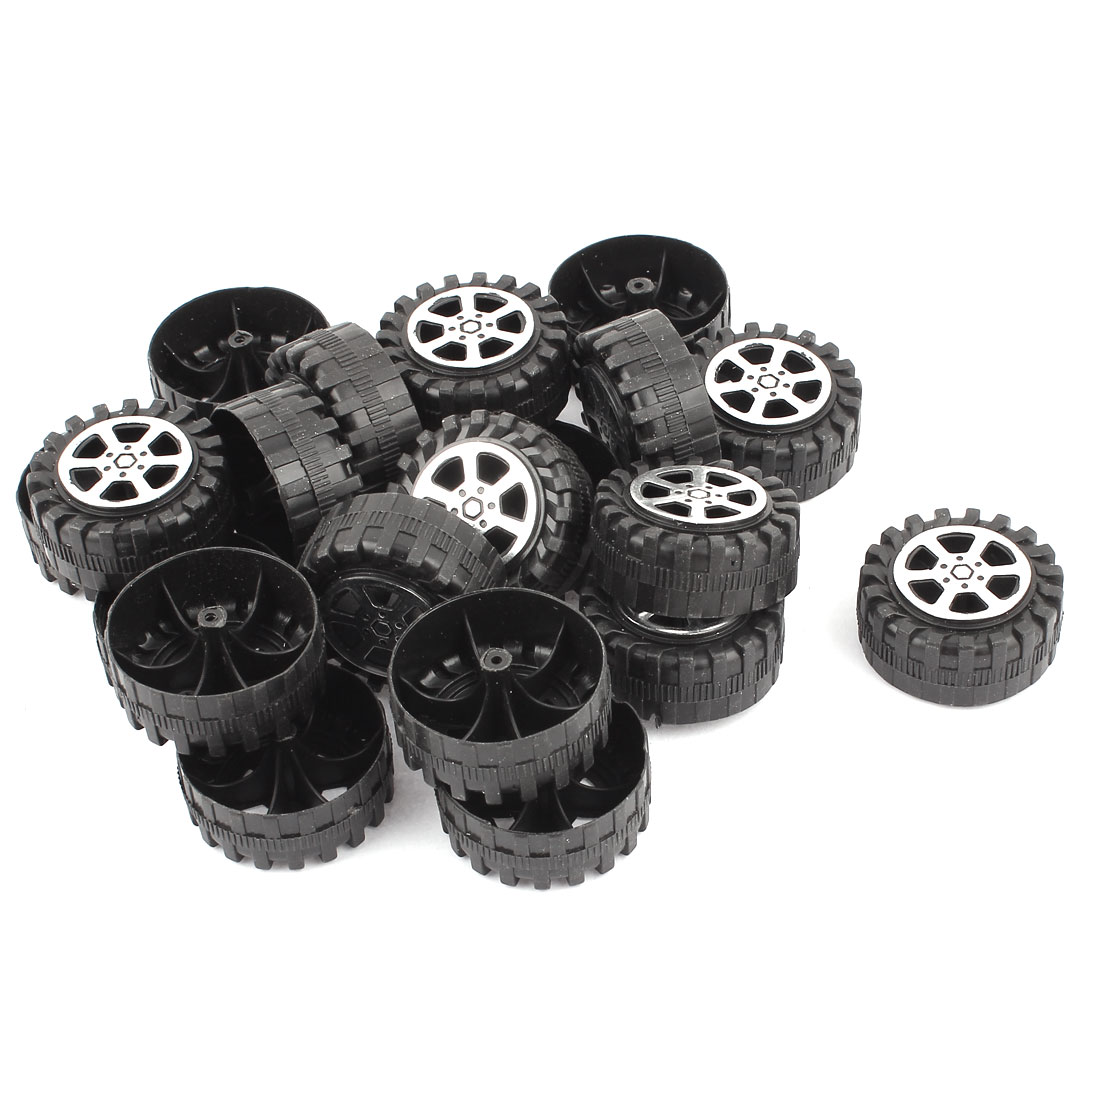 20 Pcs Plastic RC Toy Car Robot Vehicle Wheel DIY 42mm Diameter Rims Black